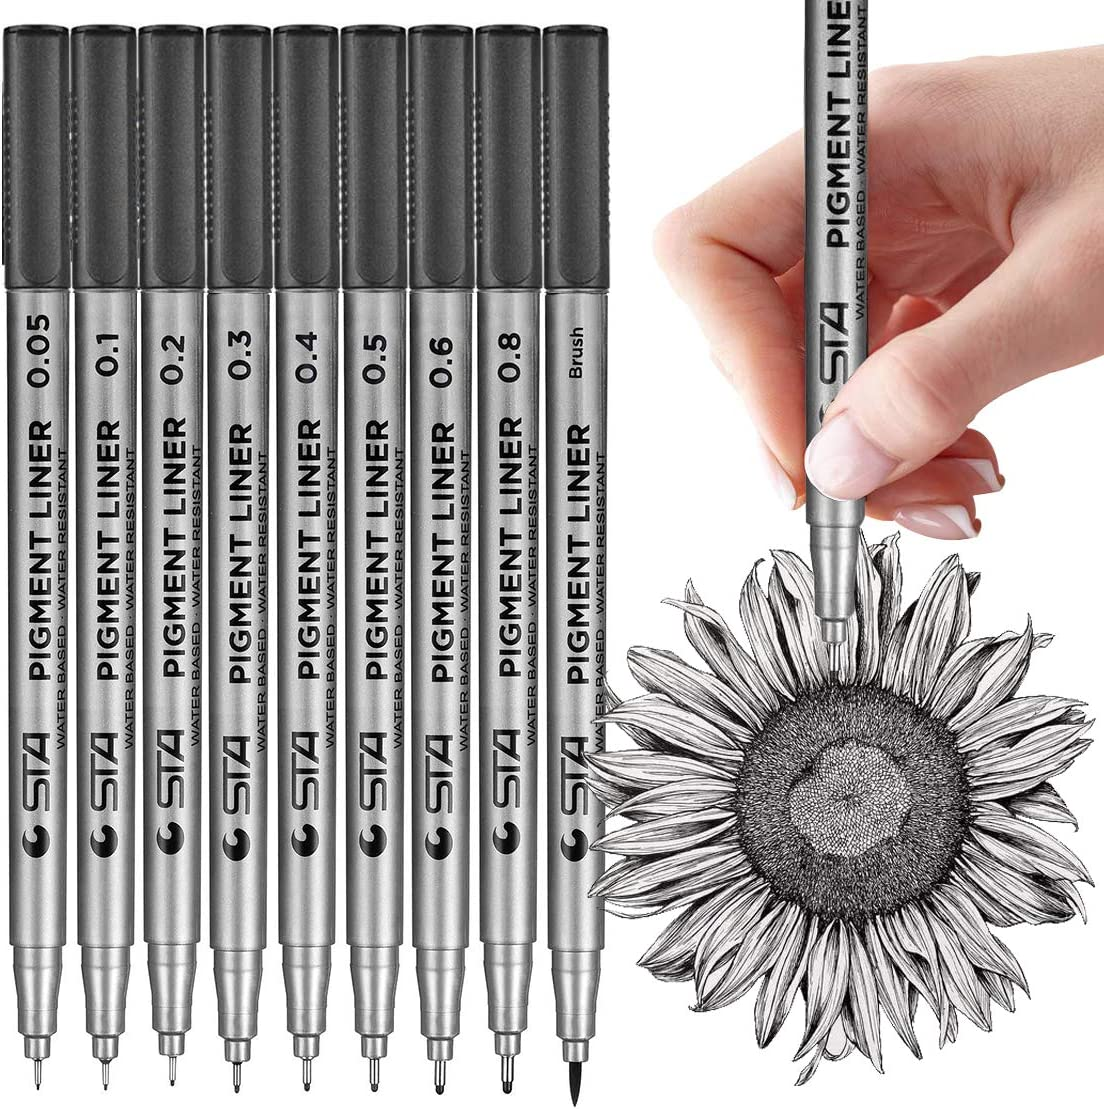 MISULOVE Micro-Pen Fineliner Ink Pens, Precision Multiliner Pens for Artist Illustration, Sketching, Technical Drawing, Manga, Scrapbooking(9 Size/Black) : Office Products